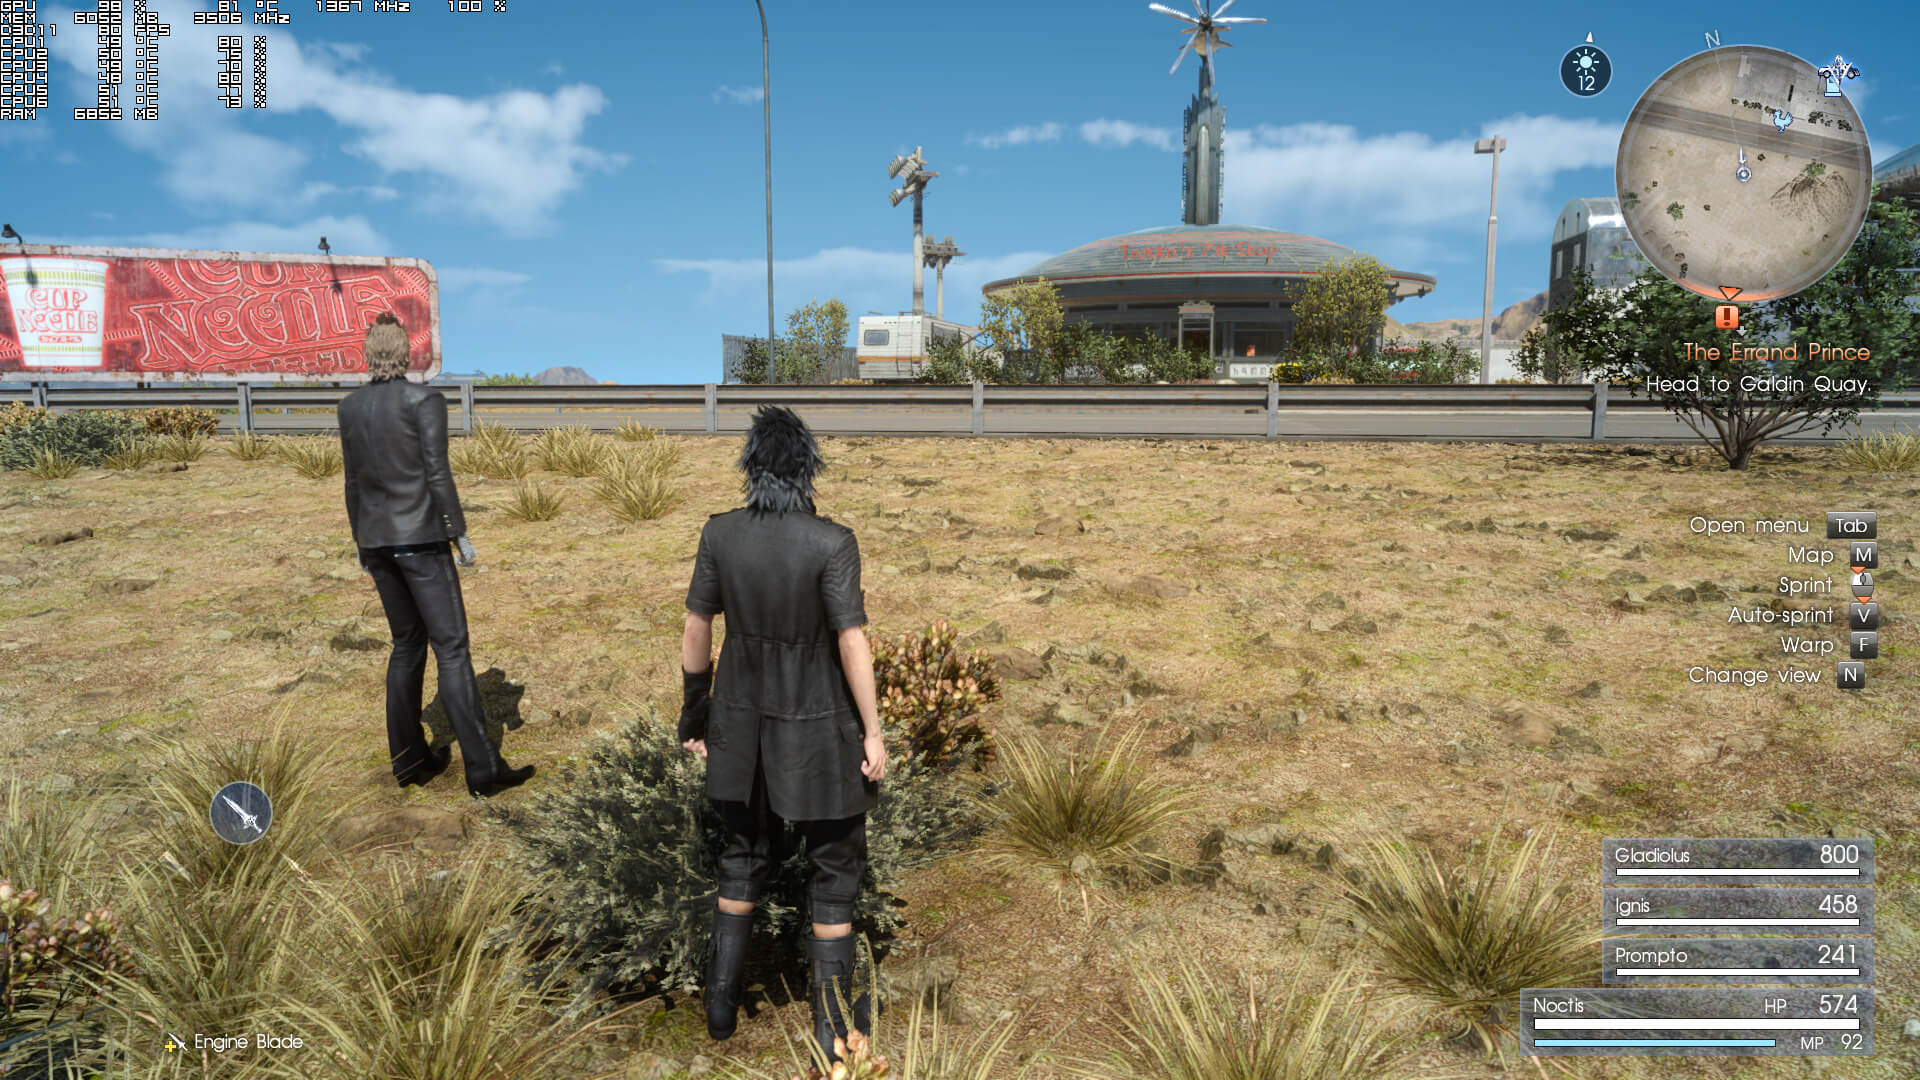 https://www.dsogaming.com/wp-content/uploads/2018/03/ffxv_s_2018_03_12_19_14_48_583.jpg